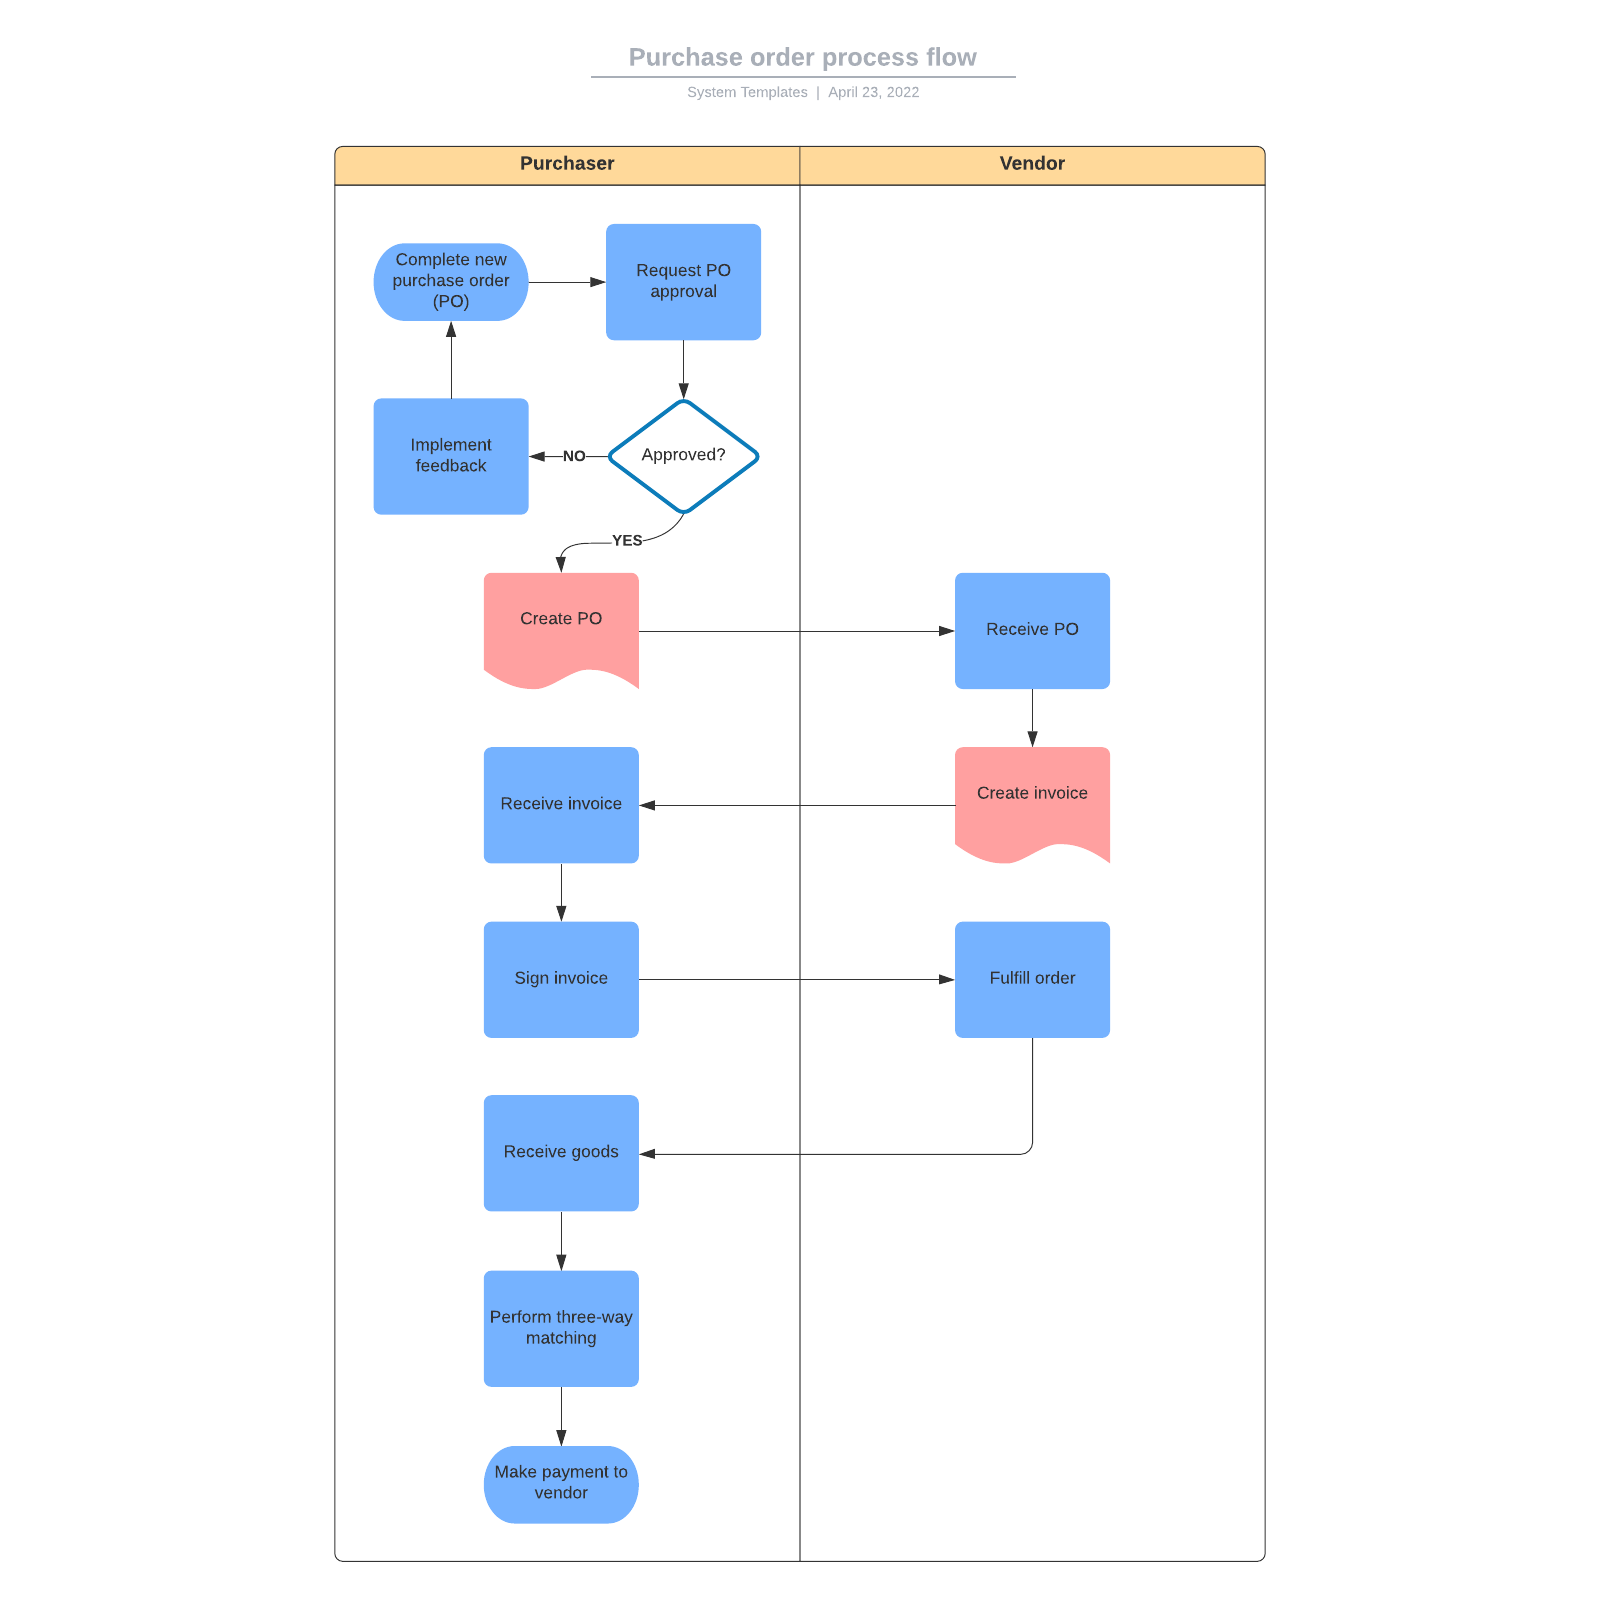 Purchase order process flow